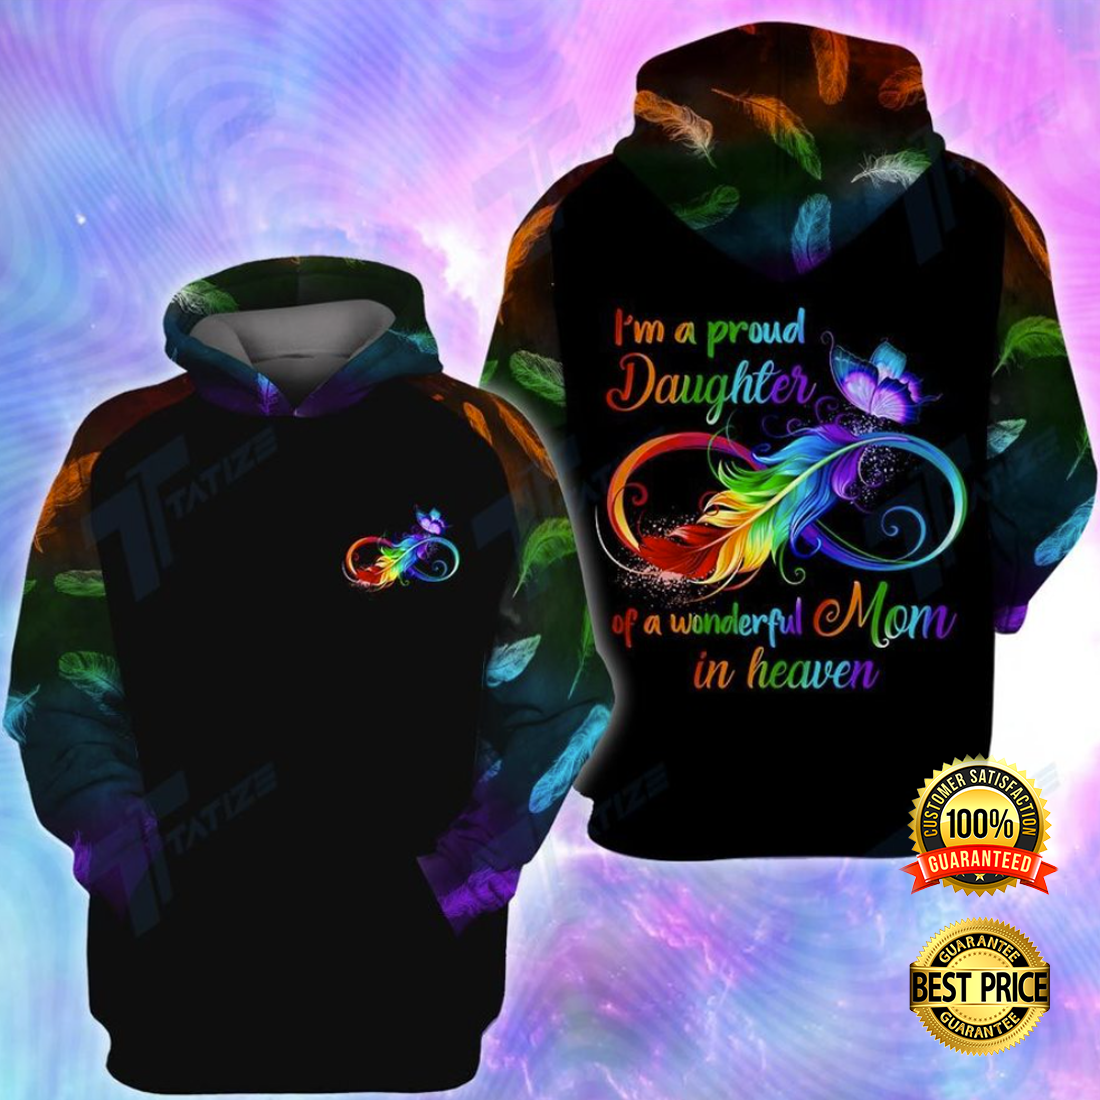 I'M A PROUD DAUGHTER OF A WONDERFUL MOM IN HEAVEN ALL OVER PRINTED 3D HOODIE 7